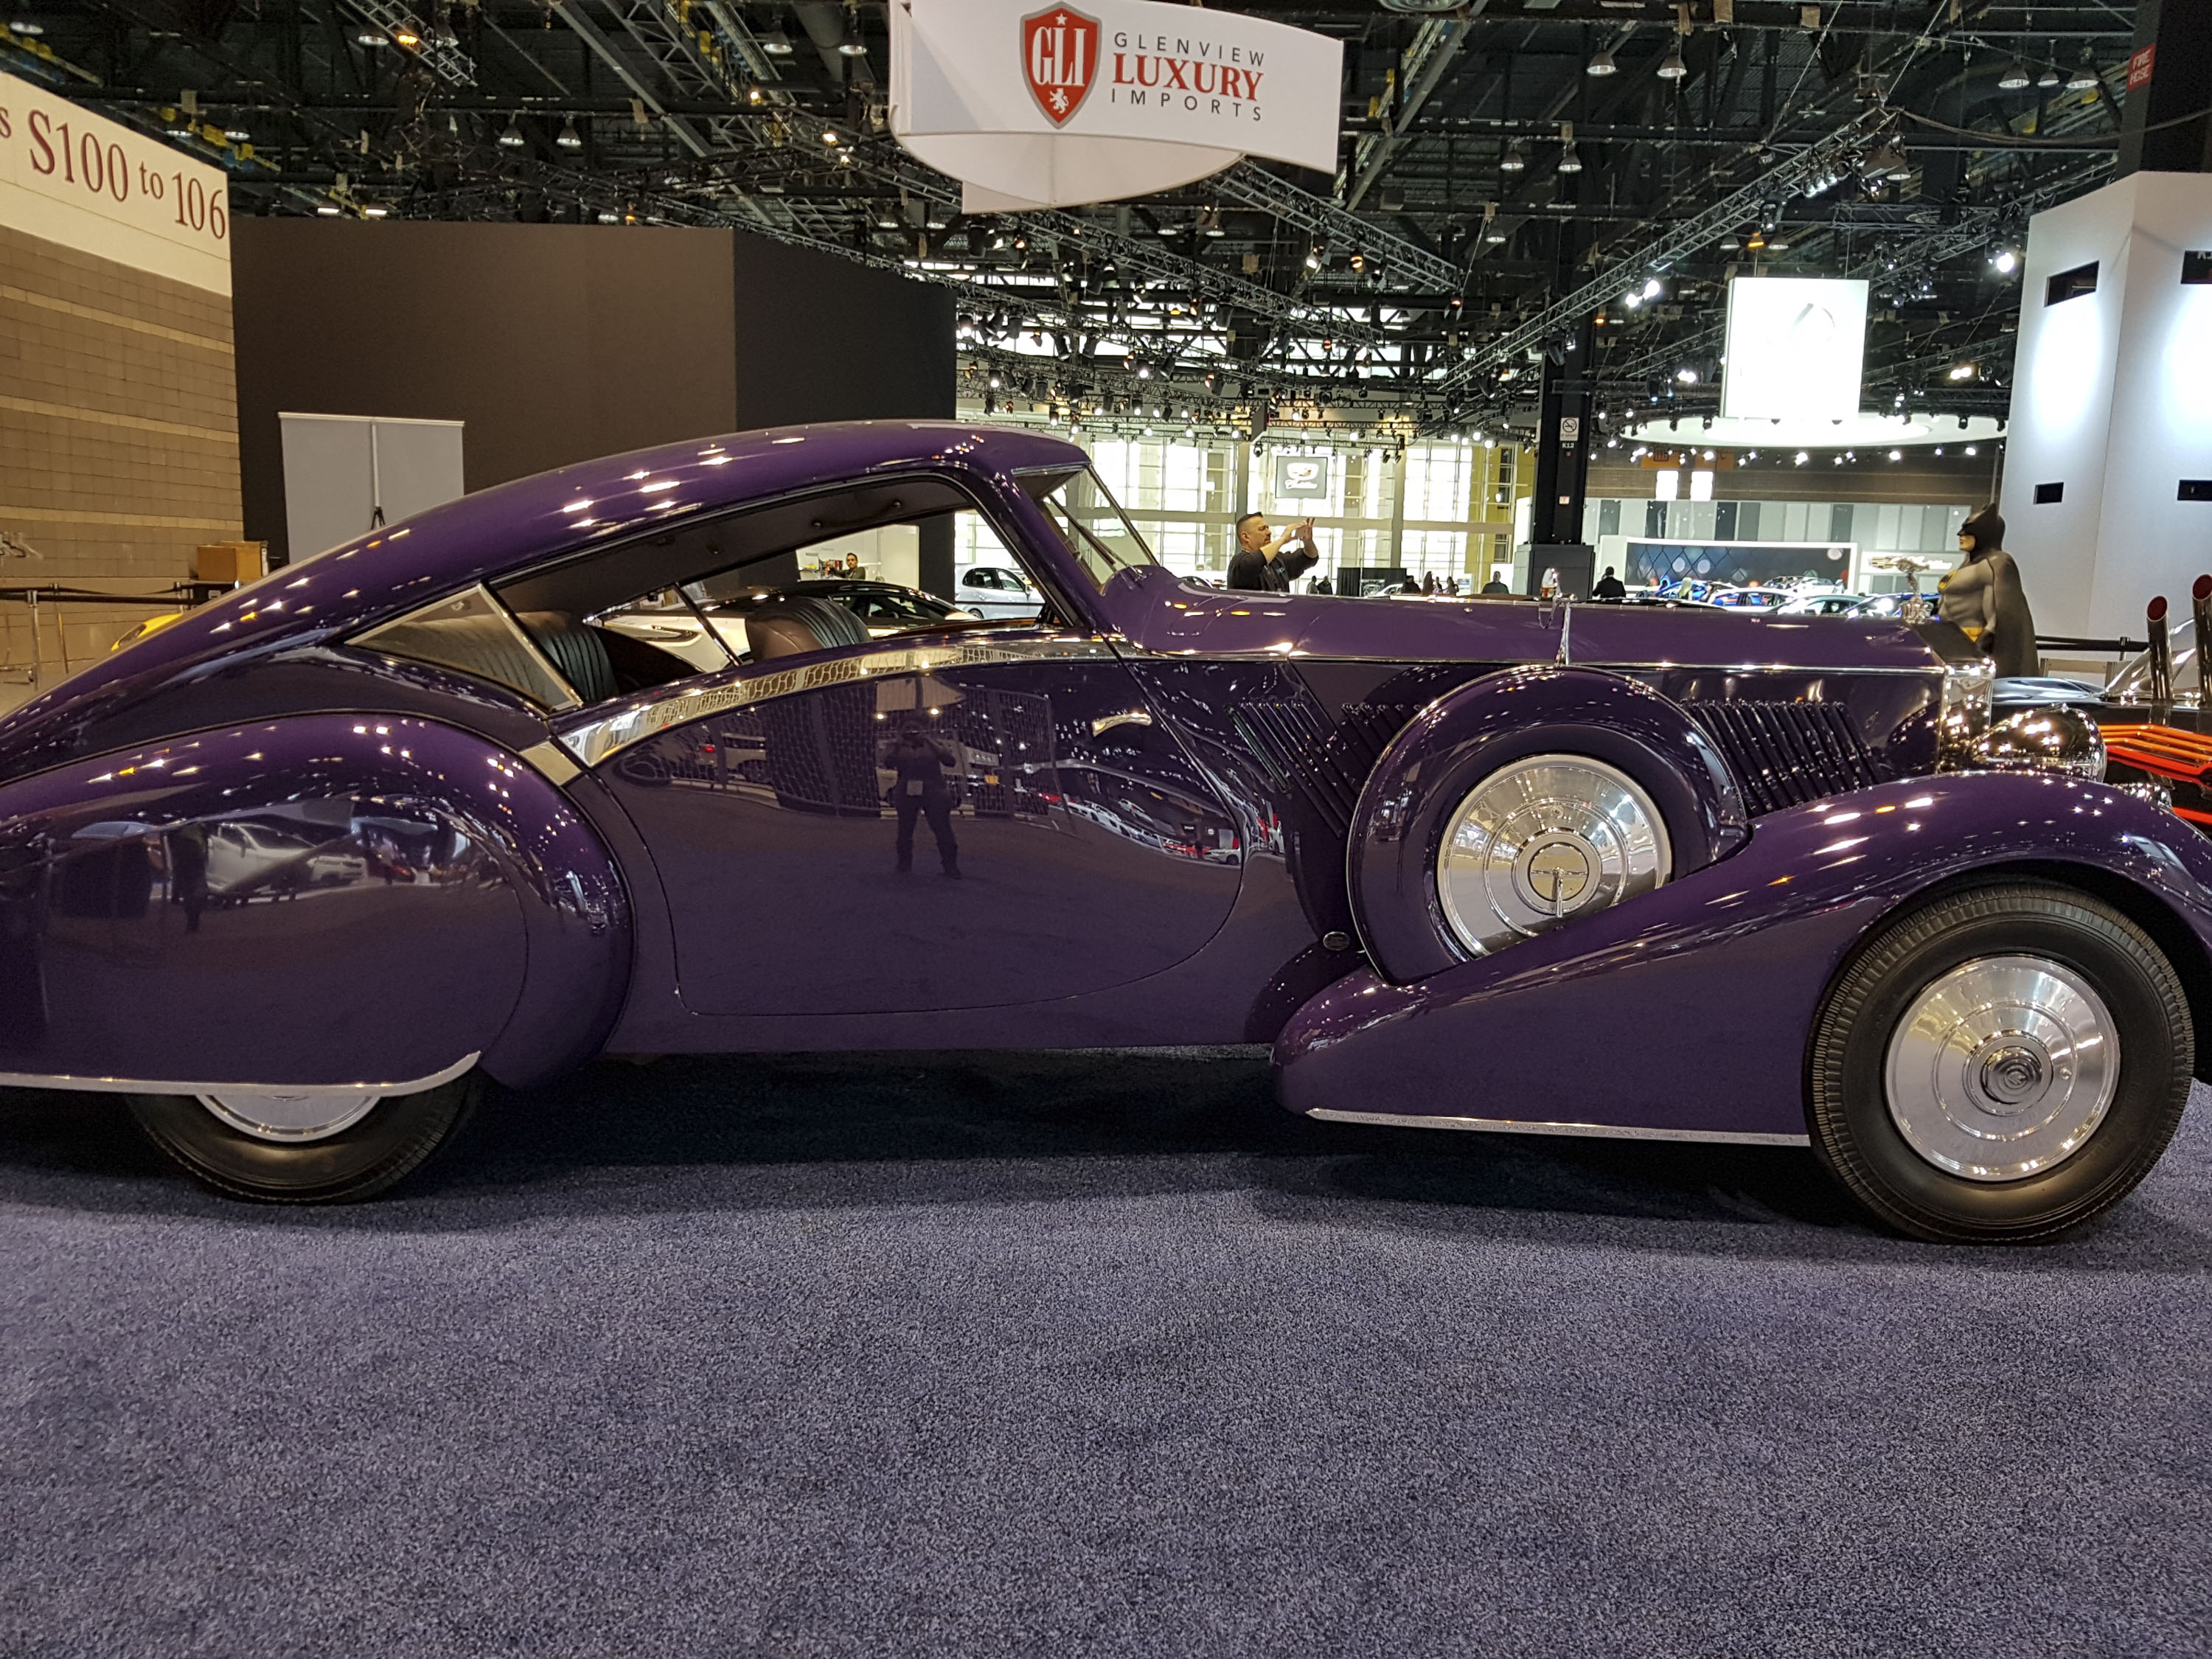 We Found A Bunch Of Cool Classic Cars At The Chicago Auto Show ...